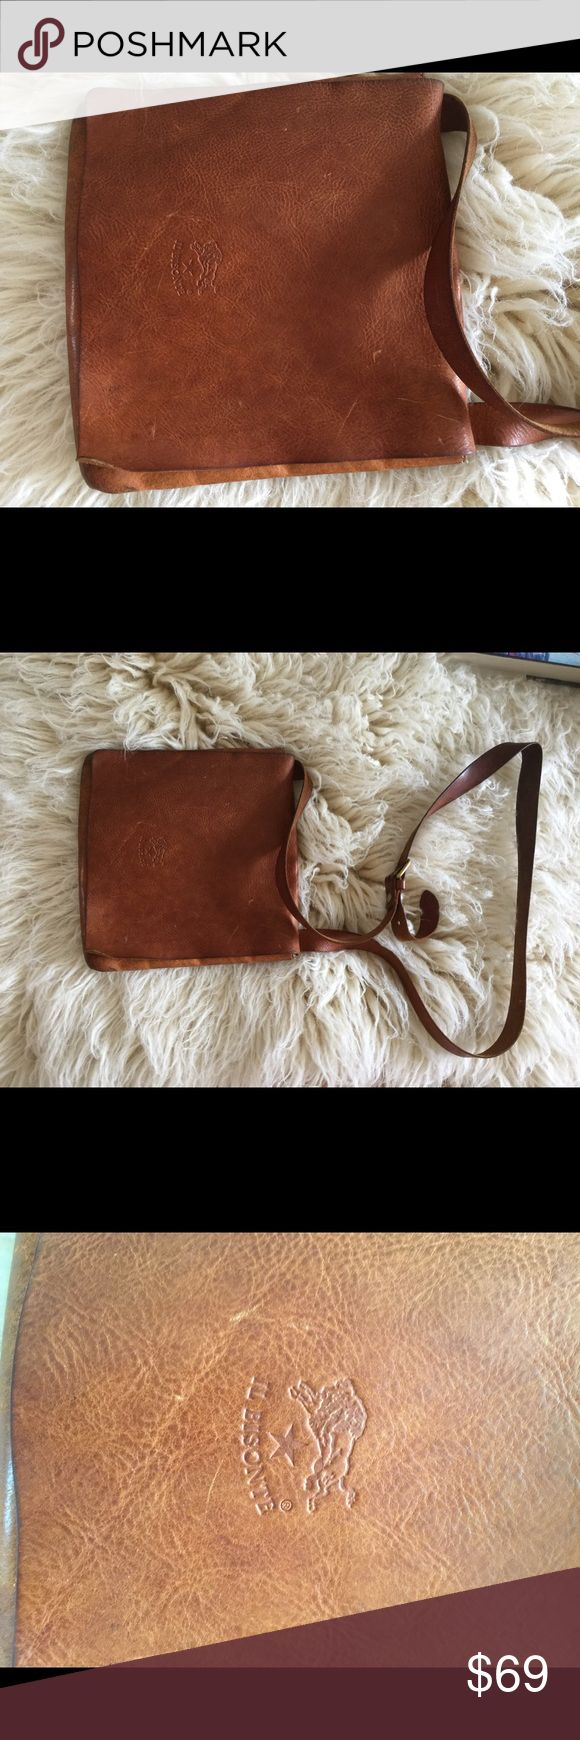 Il Bisonte brown leather Crossbody bag! Il Bisonte brown leather Crossbody bag!  Bag is well worn and has signs of wear!  Could use a good cleaning! Small rip in interior. Please see all pictures. Still life left in this bag with some love and care! Il Bisonte Bags Crossbody Bags